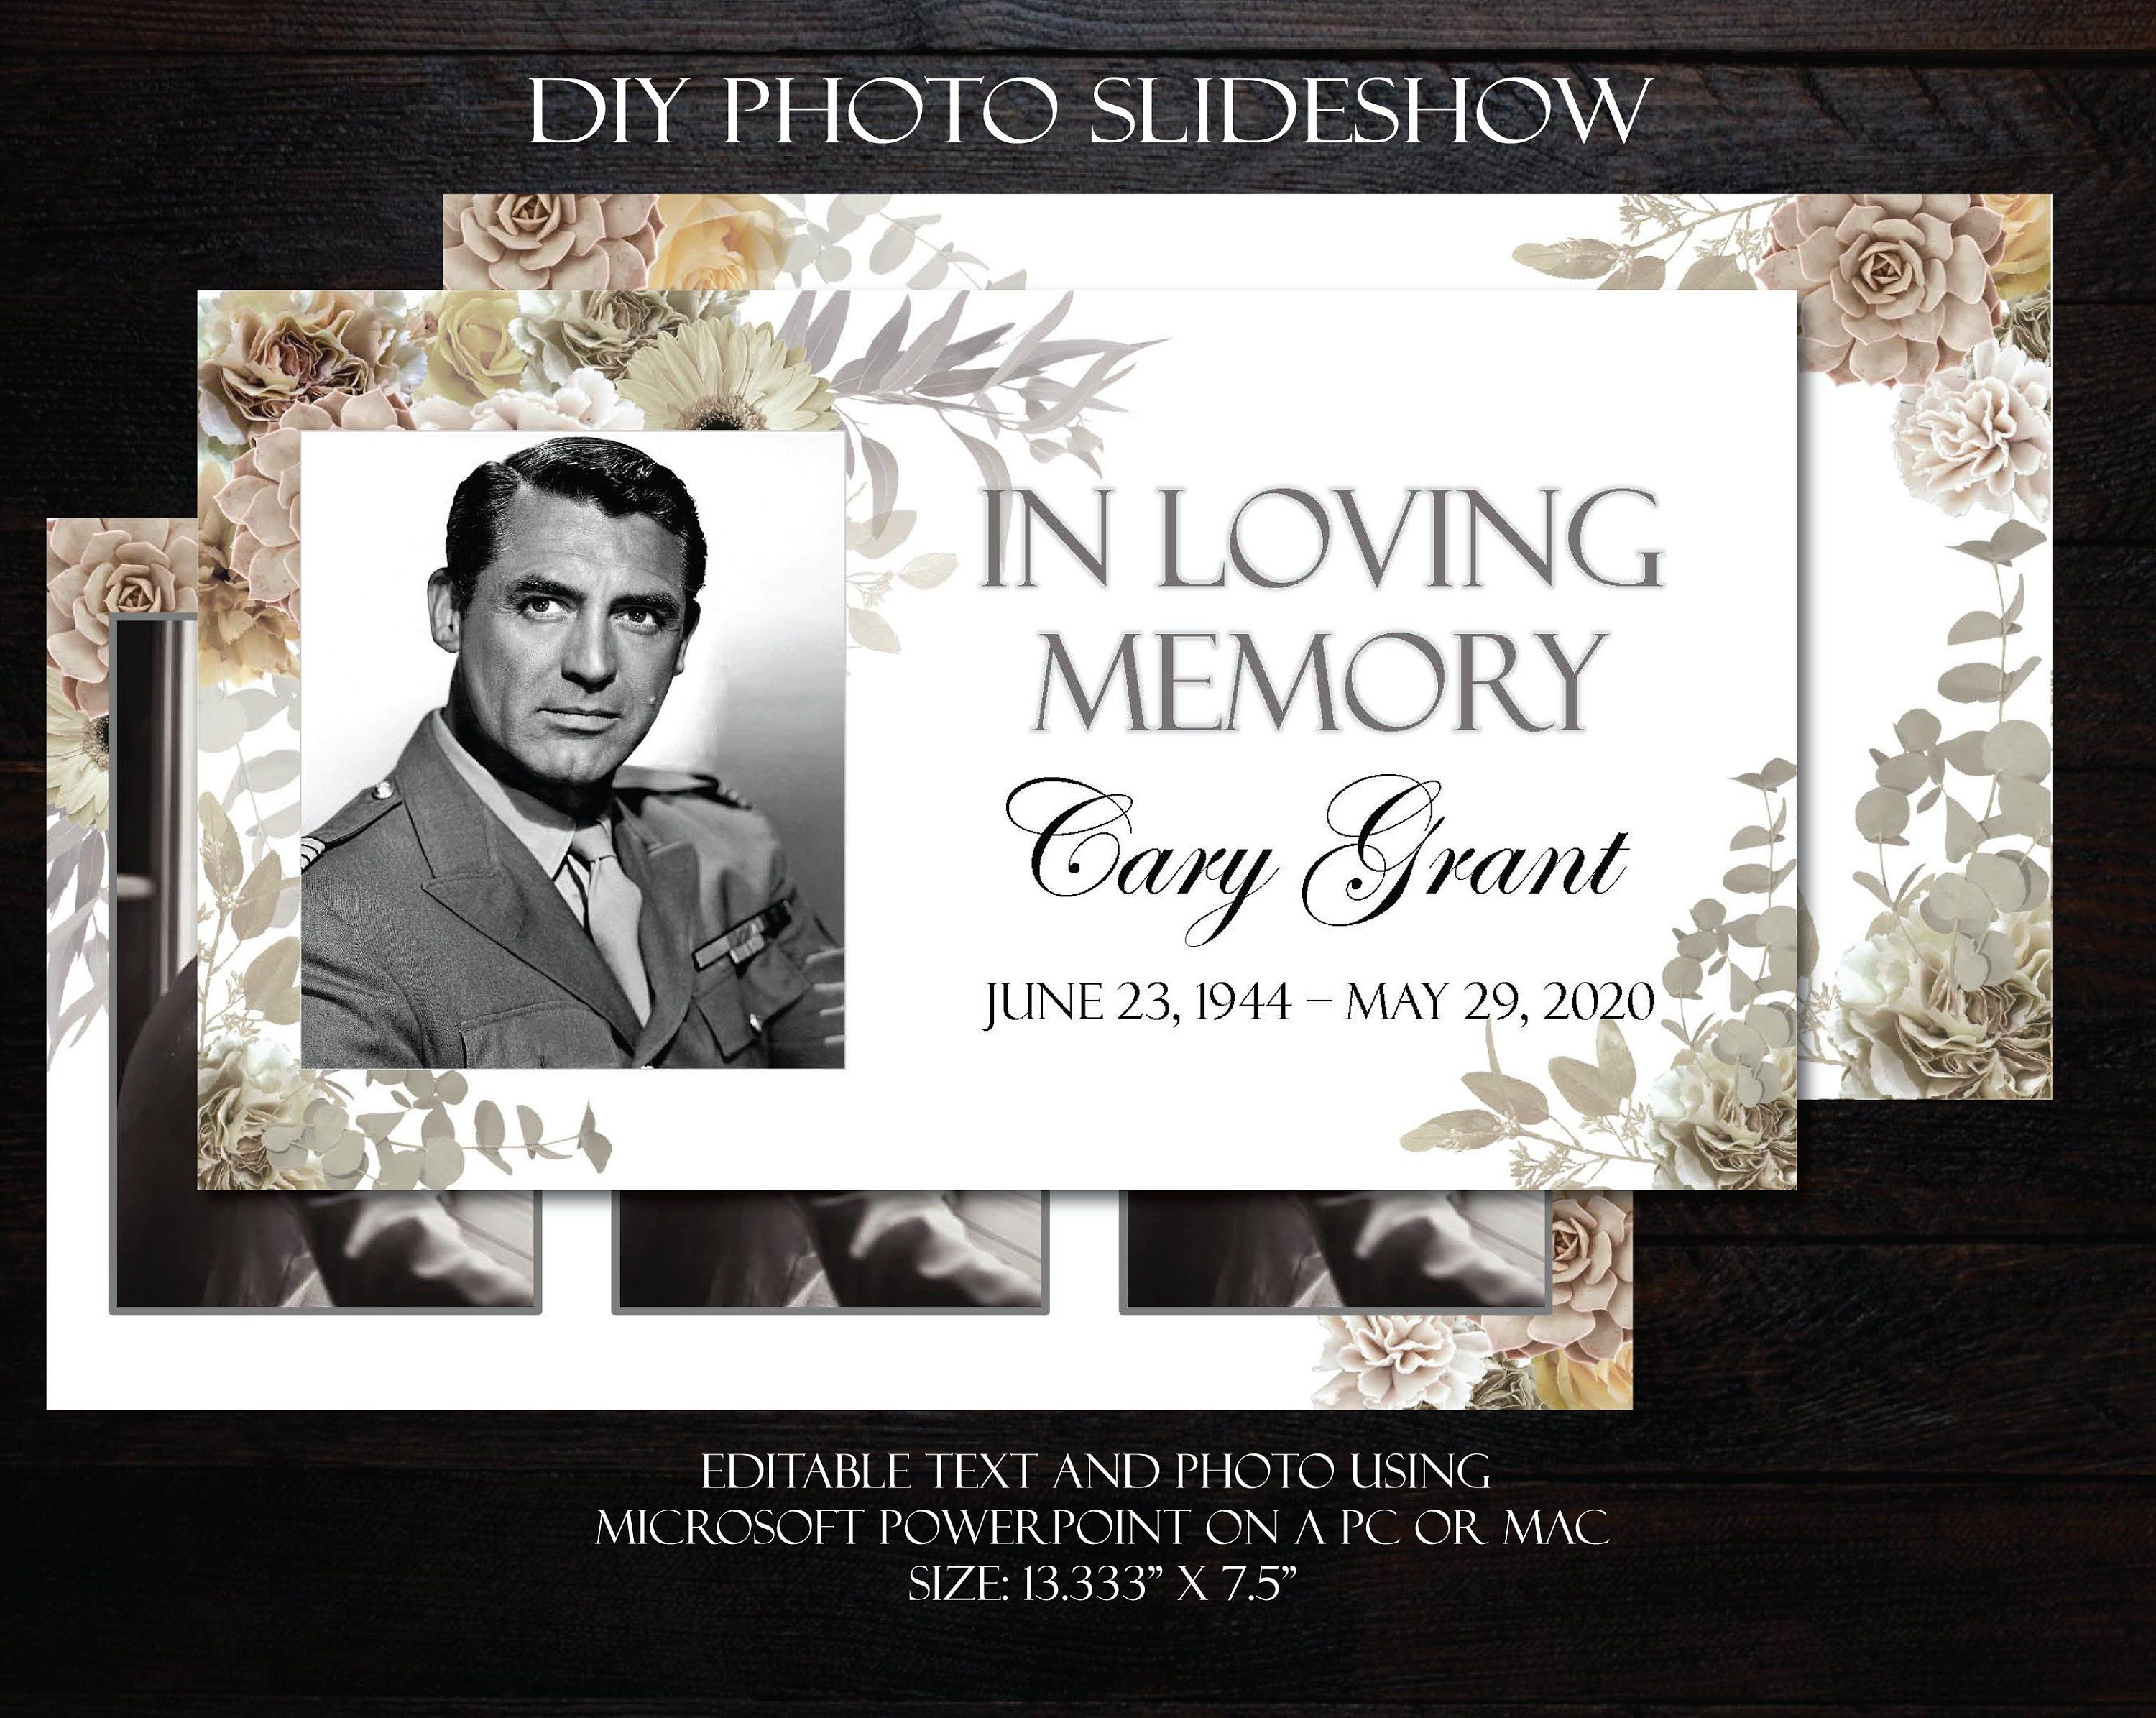 Celebration Of Life Powerpoint Template Funeral Slideshow Etsy Celebration Of Life Funeral Templates Funeral Program Template